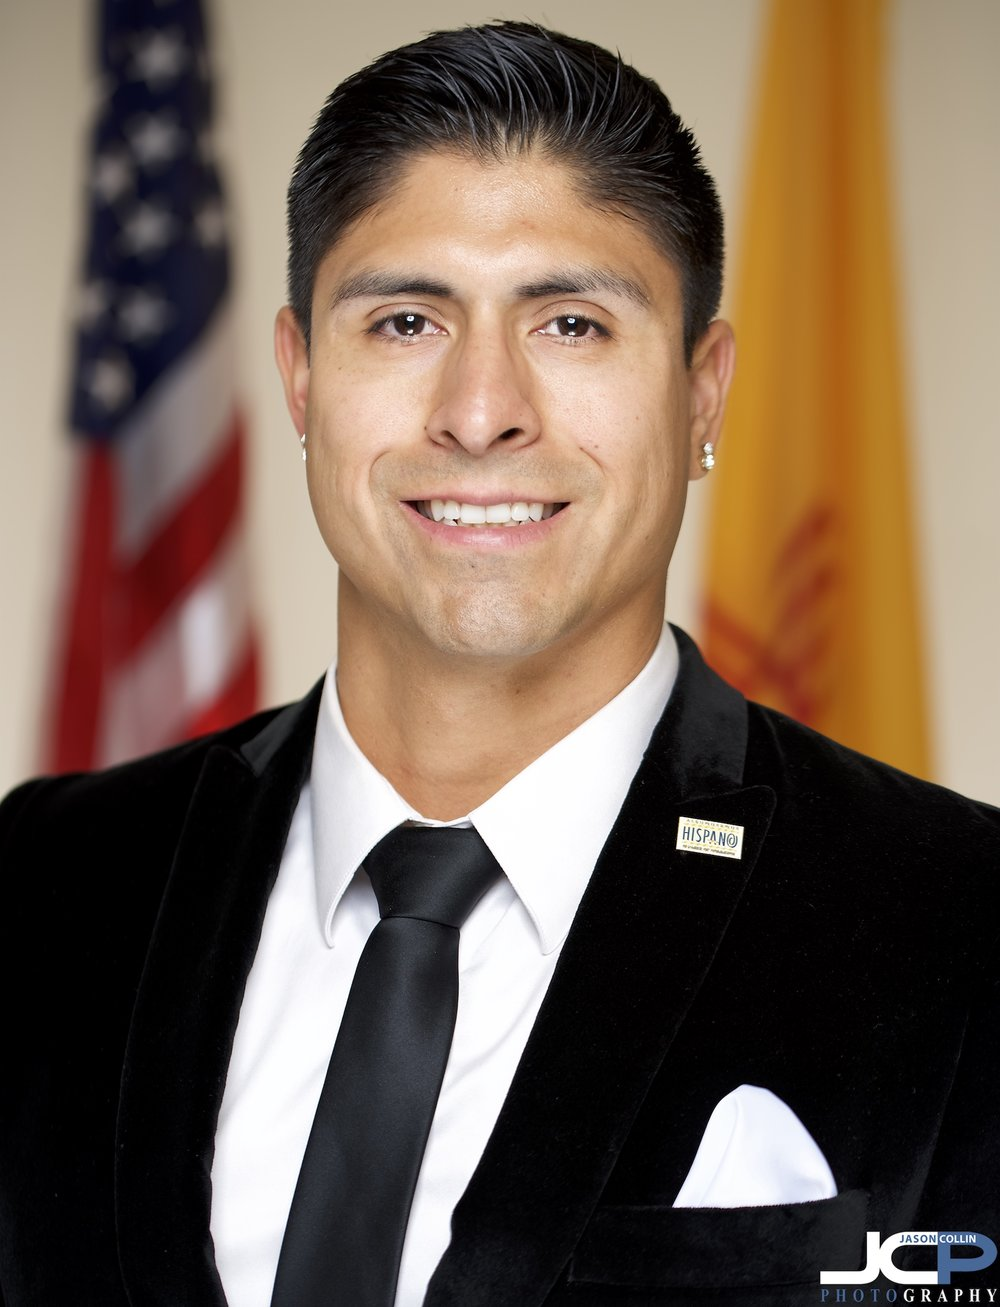 The U.S. and New Mexico flags make up the background for this series of headshots in Albuquerque